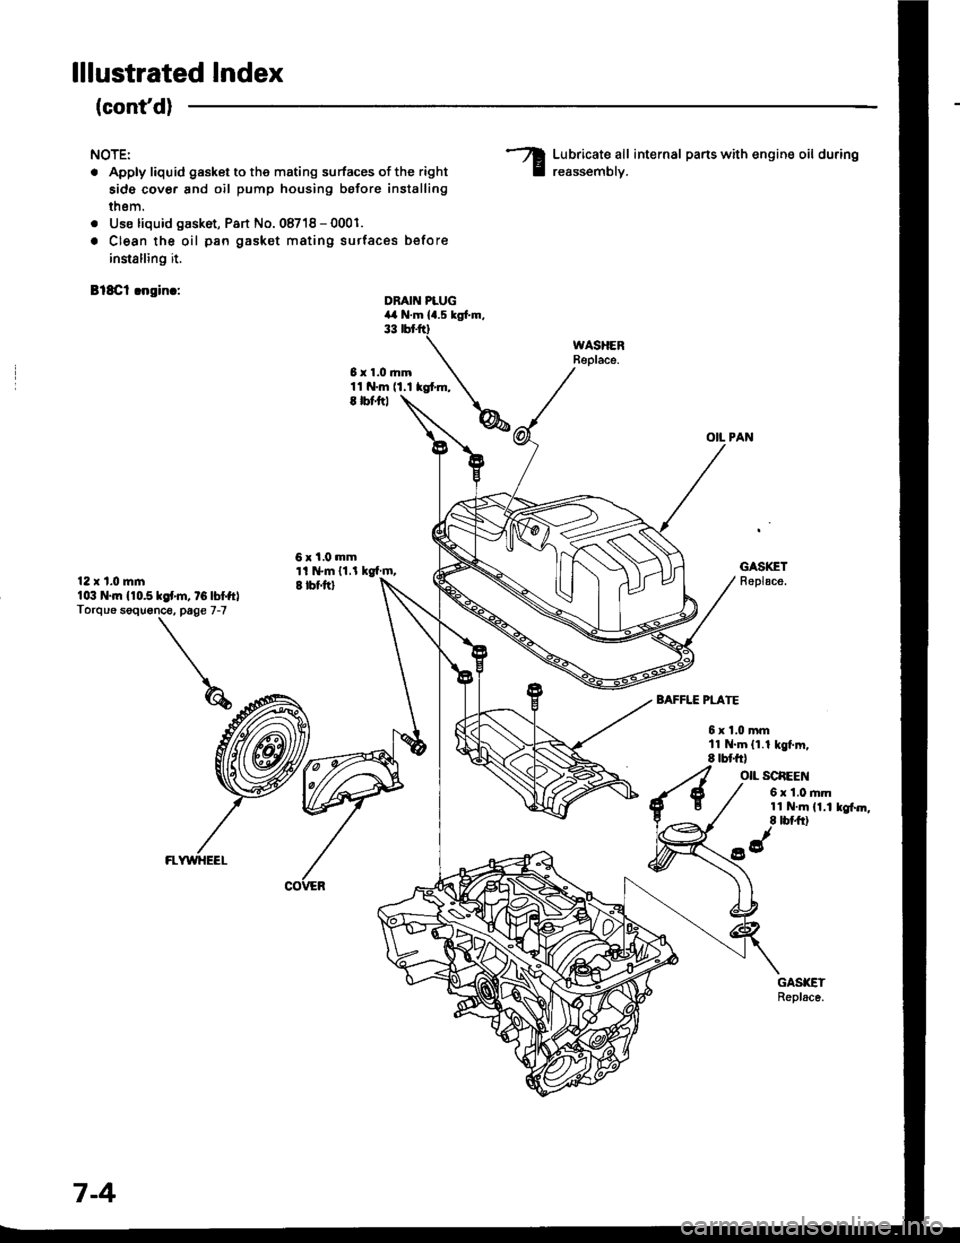 HONDA INTEGRA 1994 4.G Workshop Manual (1413 Pages), Page